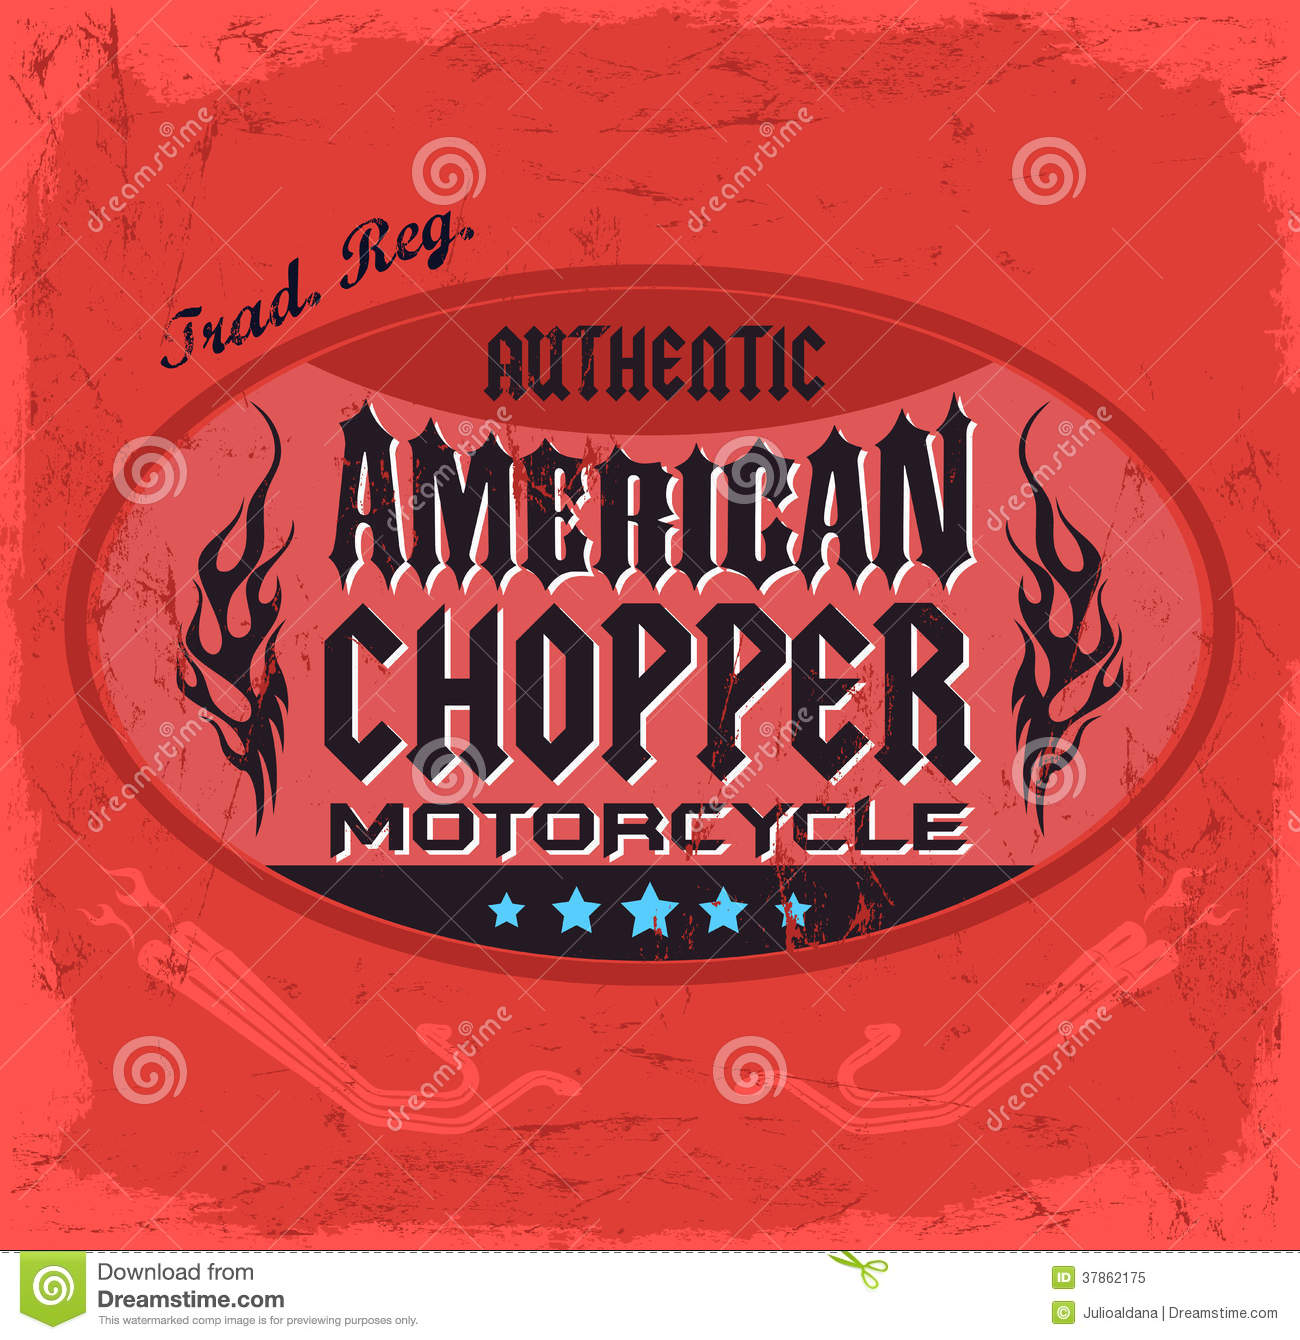 0a2c1c9f37f American Chopper Motorcycle badge - vintage design - t shirt print design -  eps